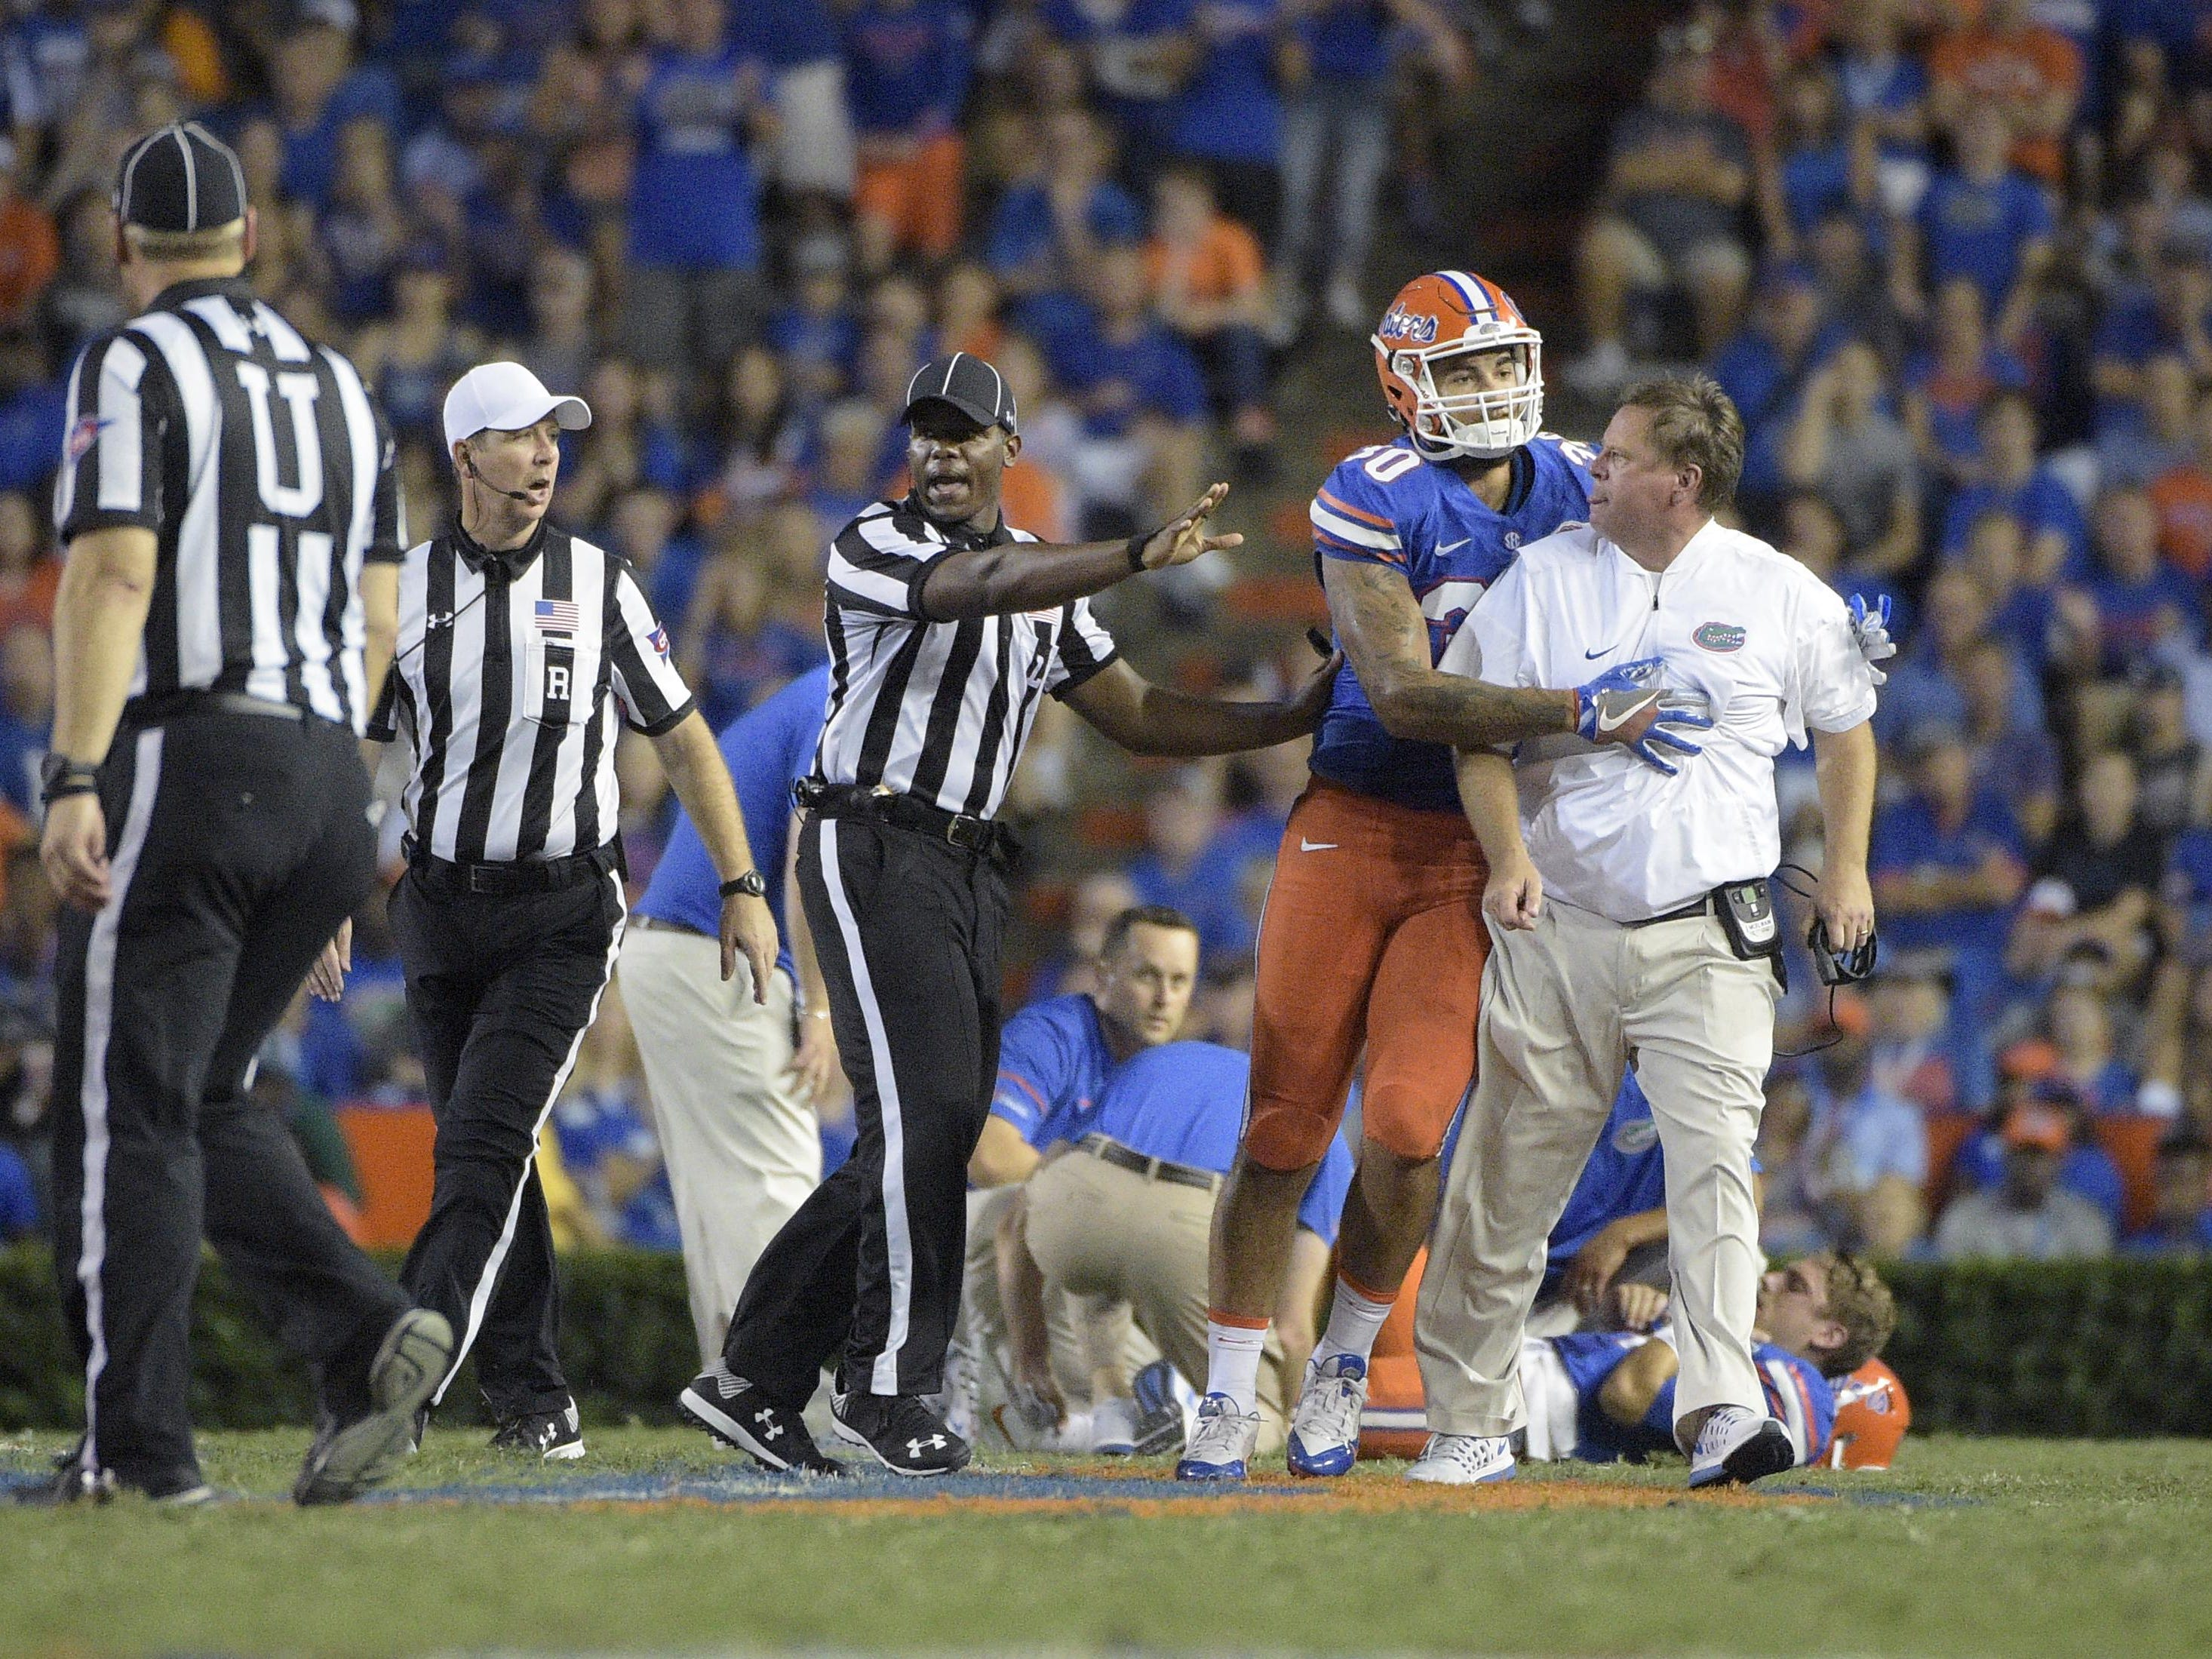 Florida head coach Jim McElwain, right, is restrained by tight end DeAndre Goolsby (30) and officials after McElwain showed his displeasure after quarterback Luke Del Rio was knocked out of the game on a hit during the second half of an NCAA college football game against North Texas in Gainesville, Fla., Saturday, Sept. 17, 2016. North Texas was penalized for roughing the passer. (AP Photo/Phelan M. Ebenhack)